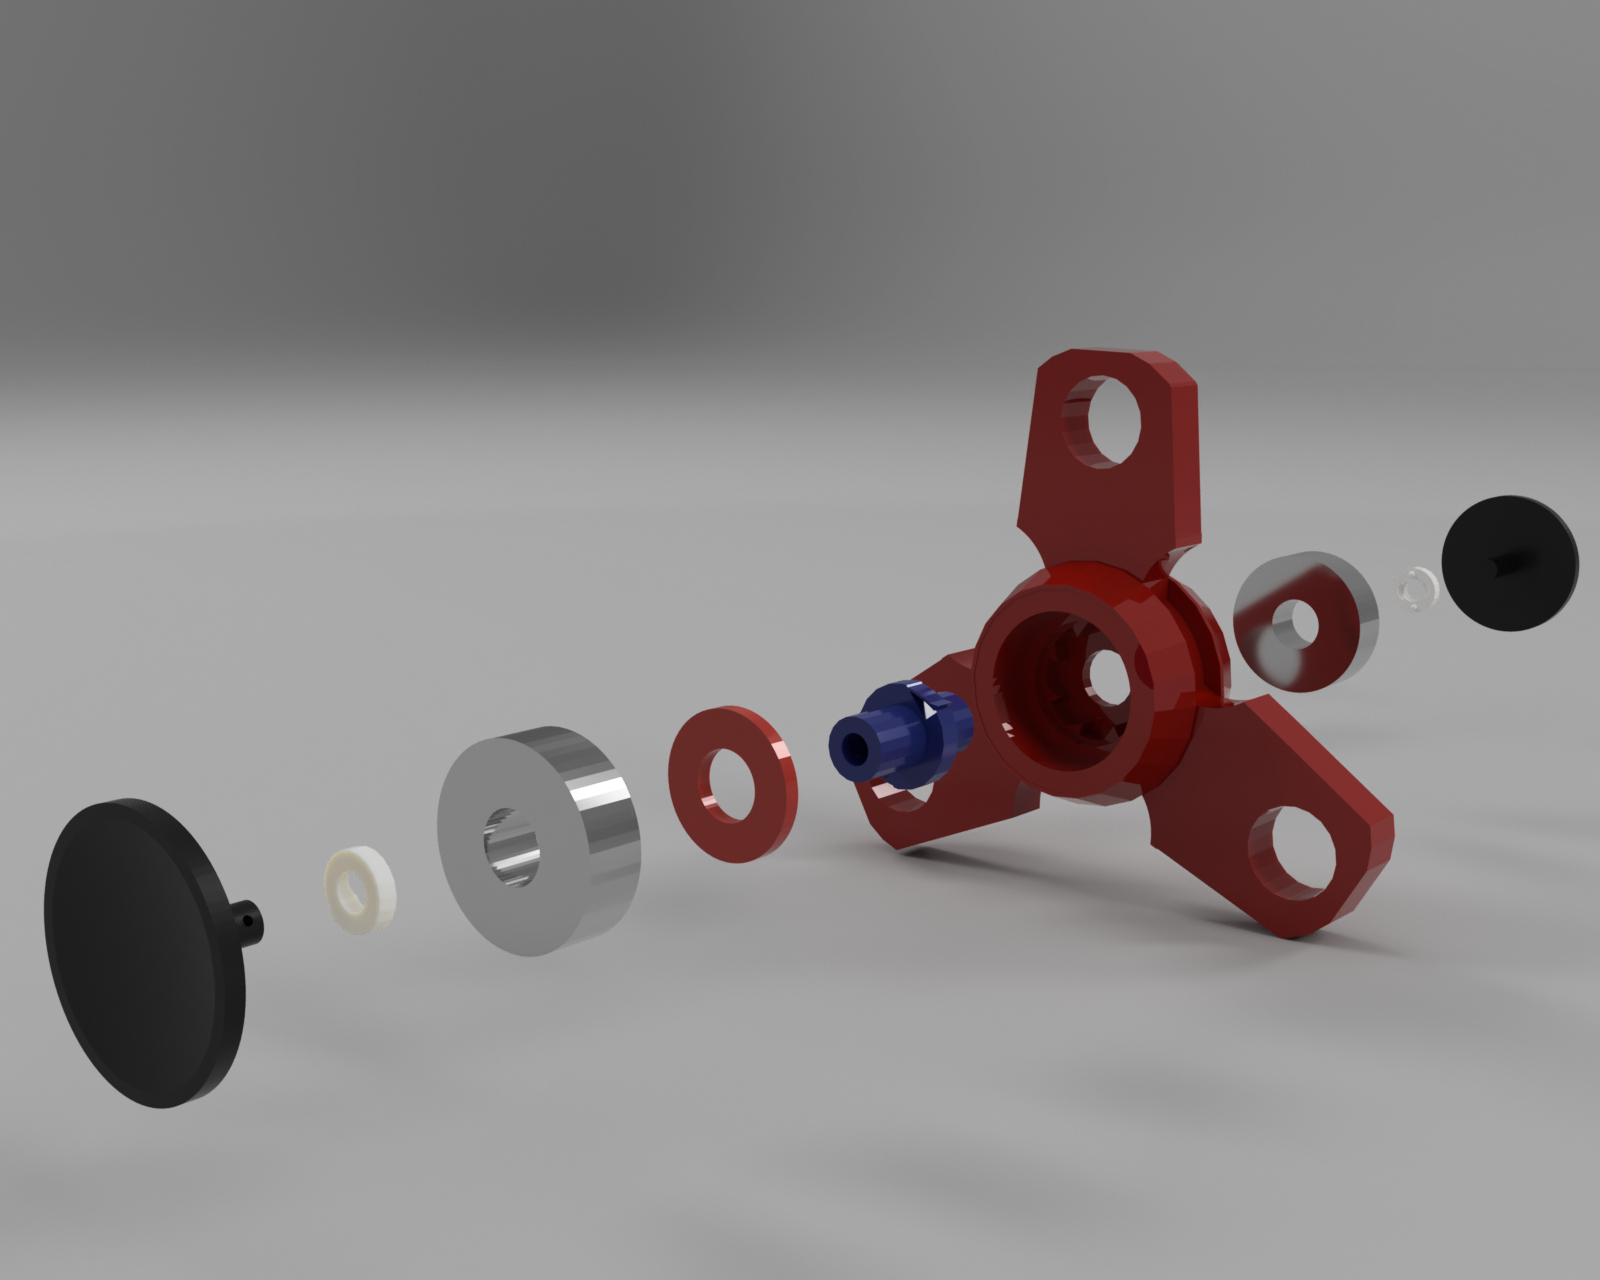 Picture of Forever Spinner - Tinkercad 3D Printed